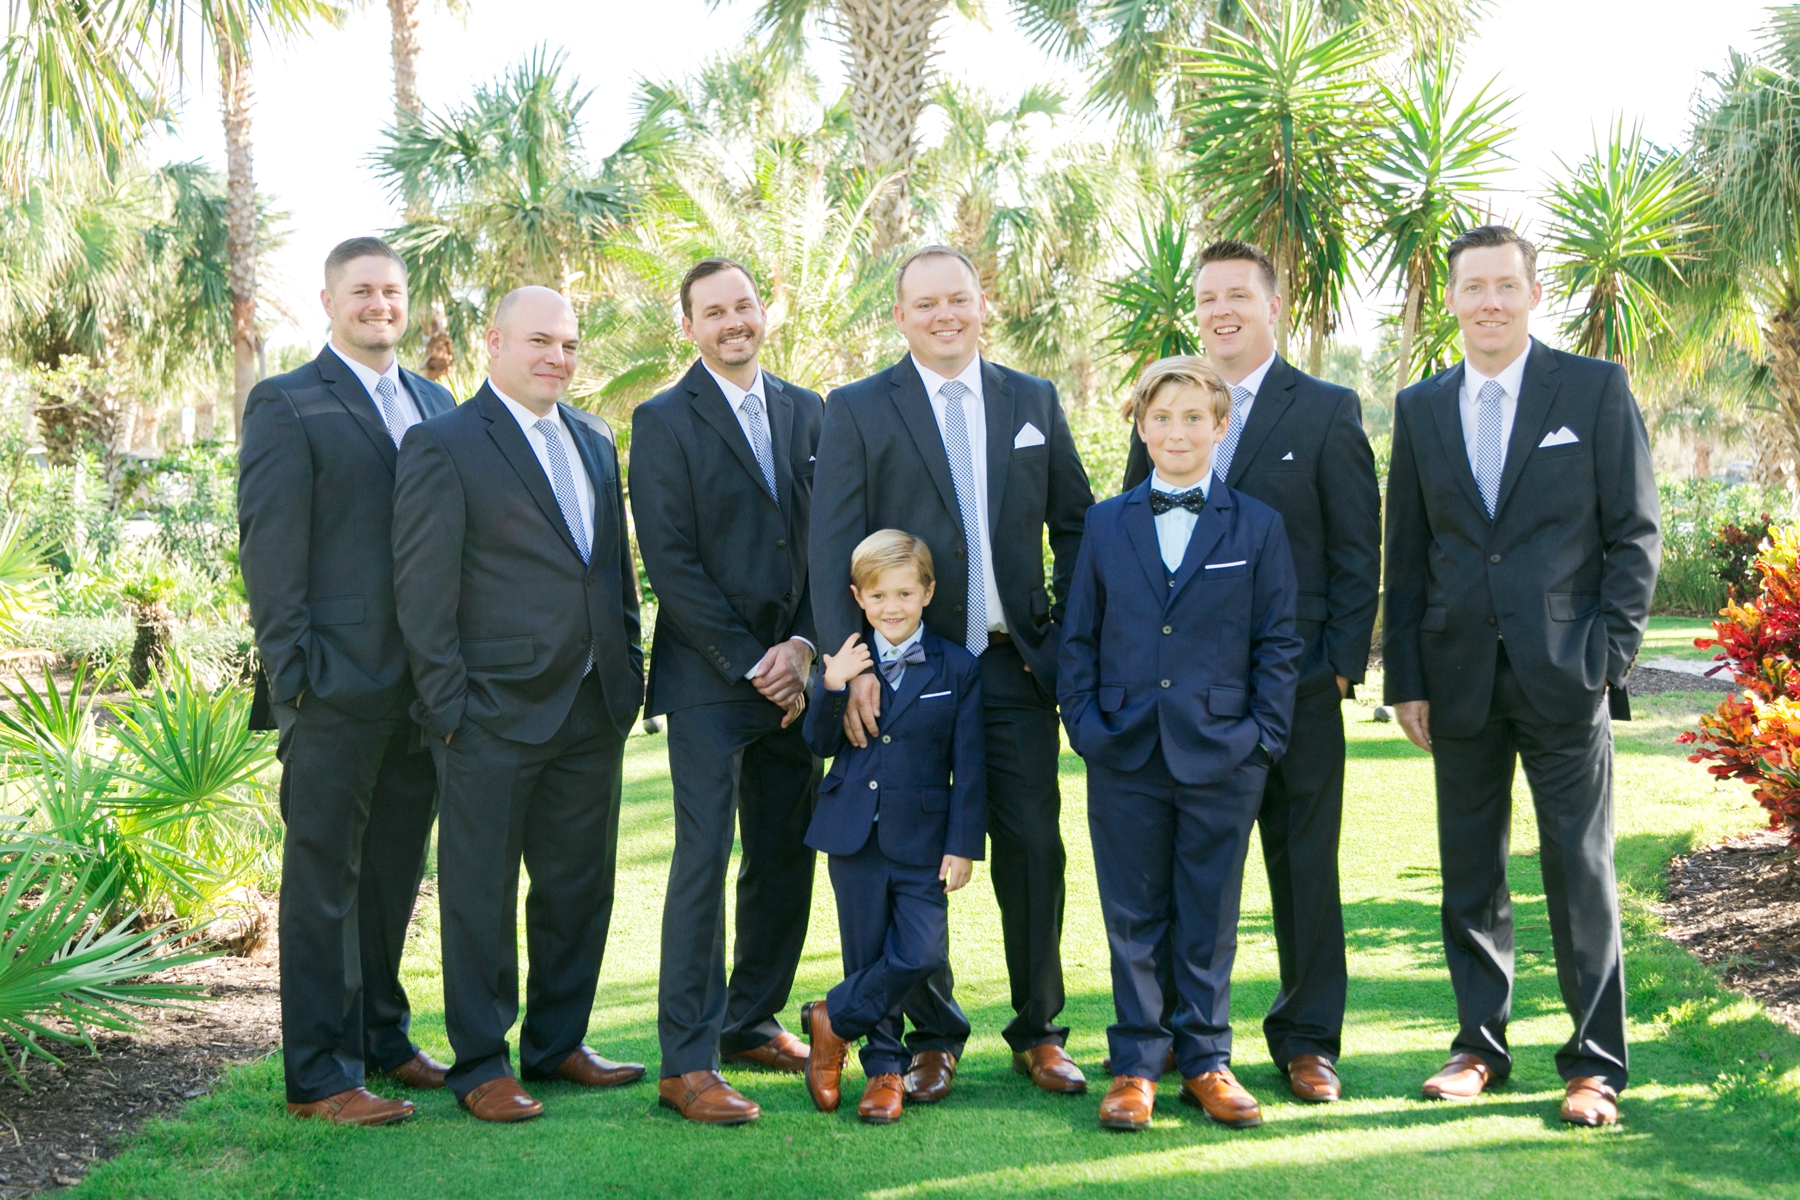 casual groomsmen photos